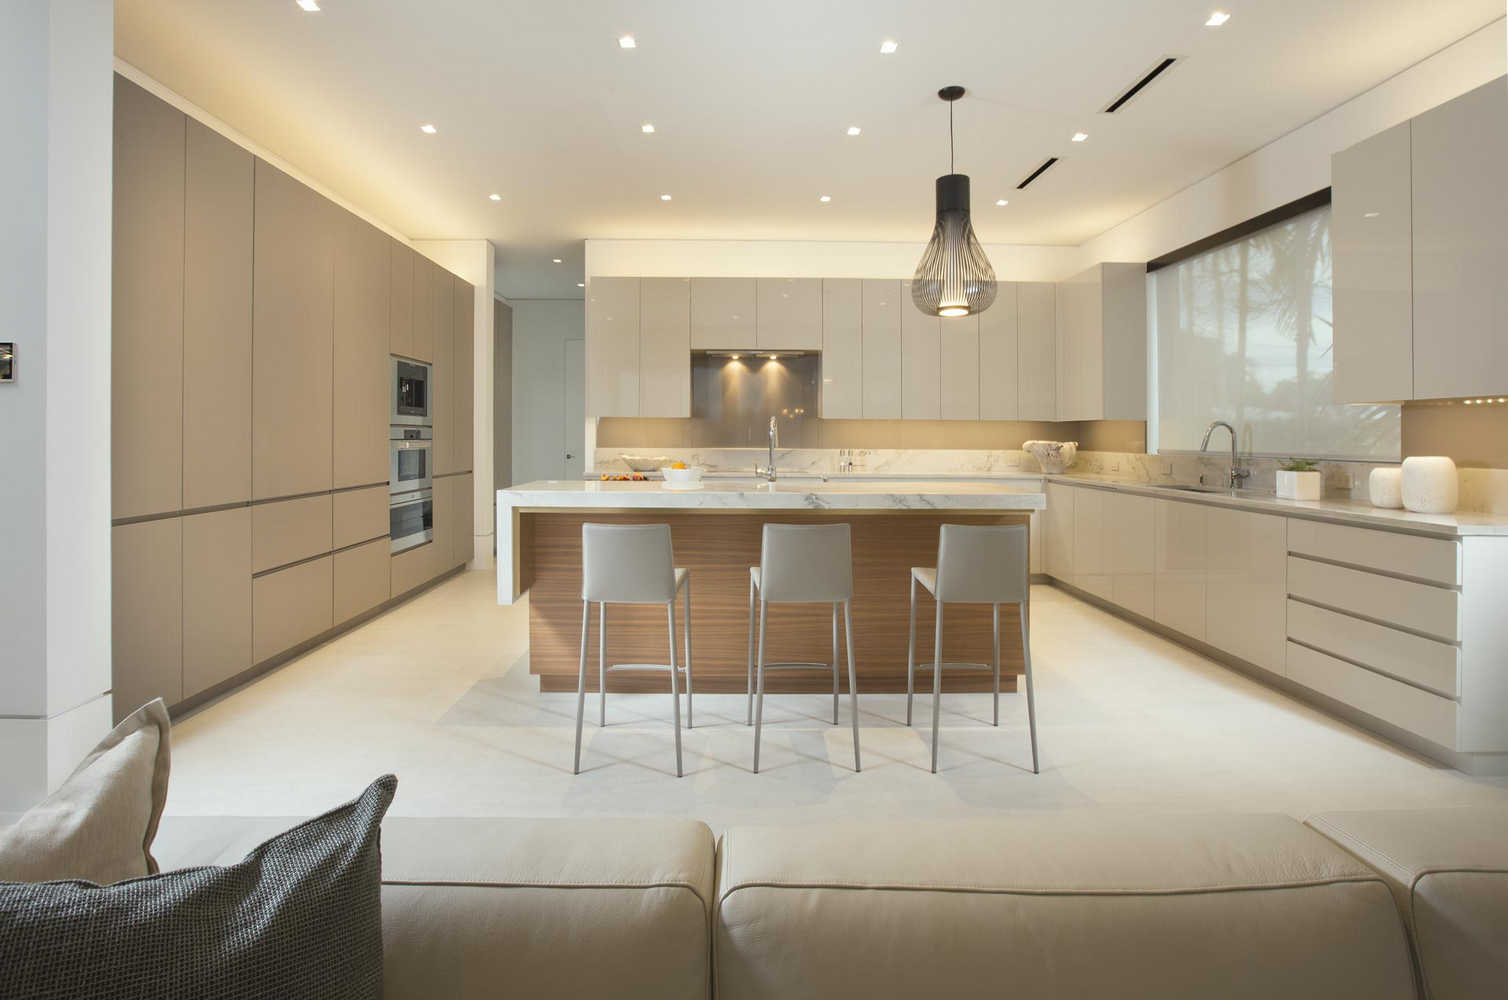 Creative Kitchen Design Ideas - DKOR Interior Design Portfolio